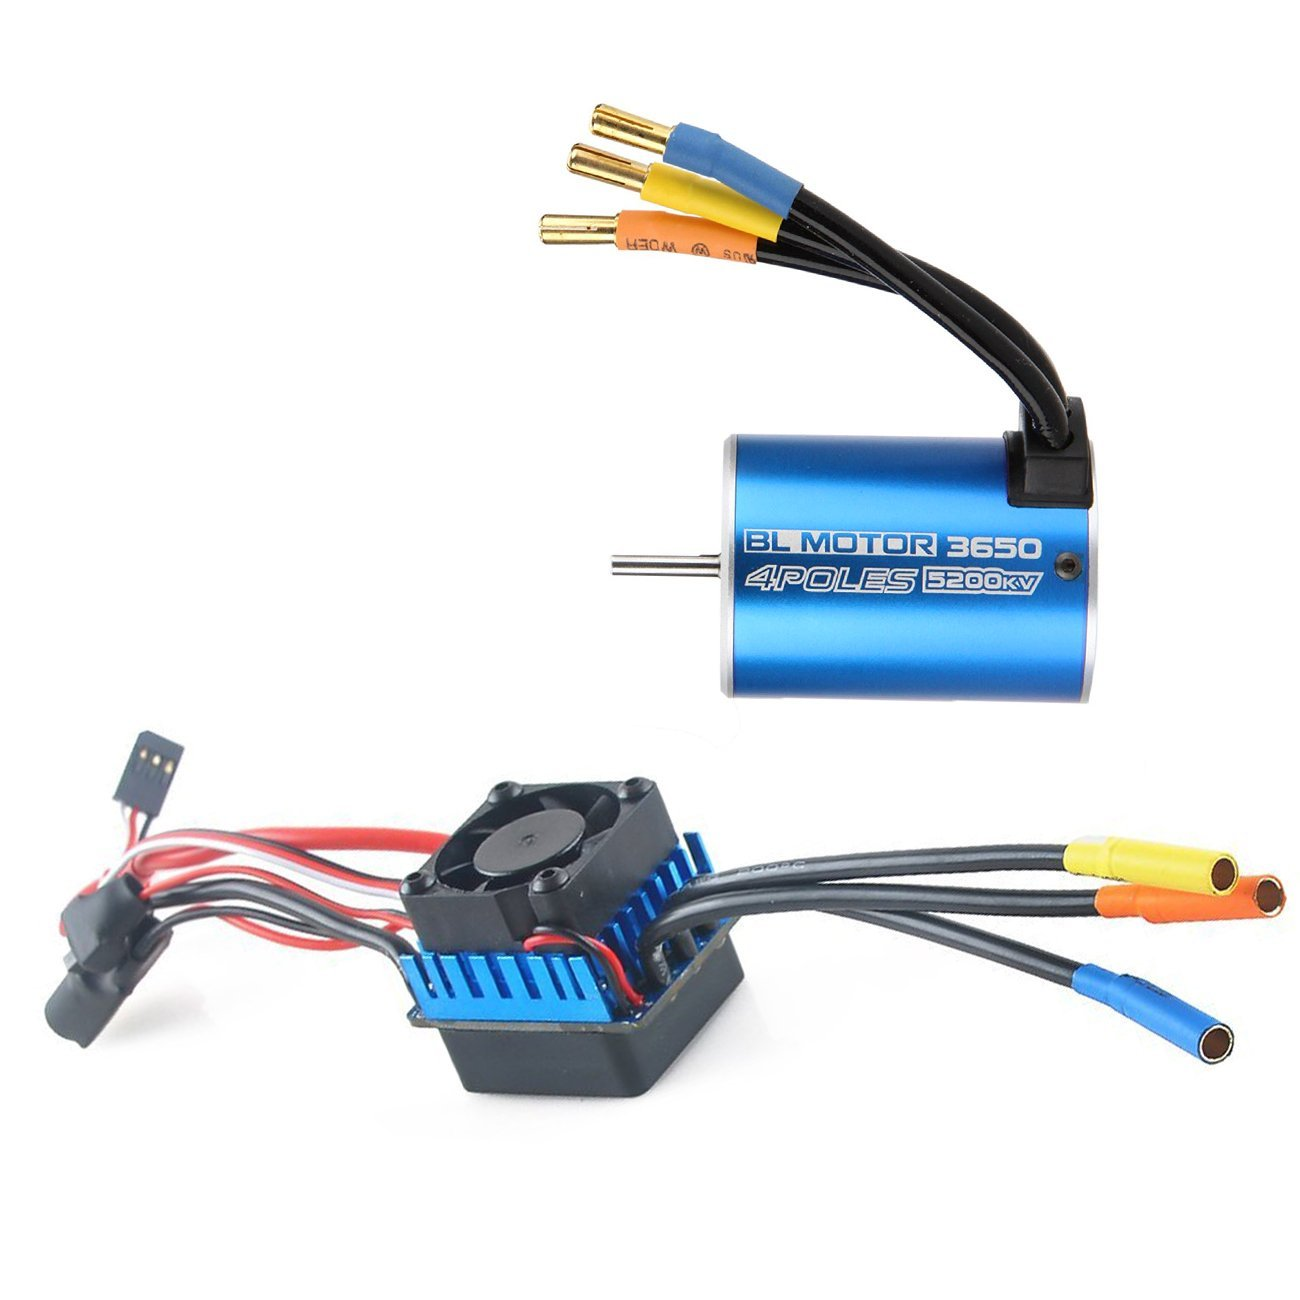 3650 5200KV Brushless Motor and 60A Splashproof ESC Eletronic Speed Controller for 1:10 Racing Truck Truggy RC Cars By RCRunning 4set lot universal rc quadcopter part kit 1045 propeller 1pair hp 30a brushless esc a2212 1000kv outrunner brushless motor